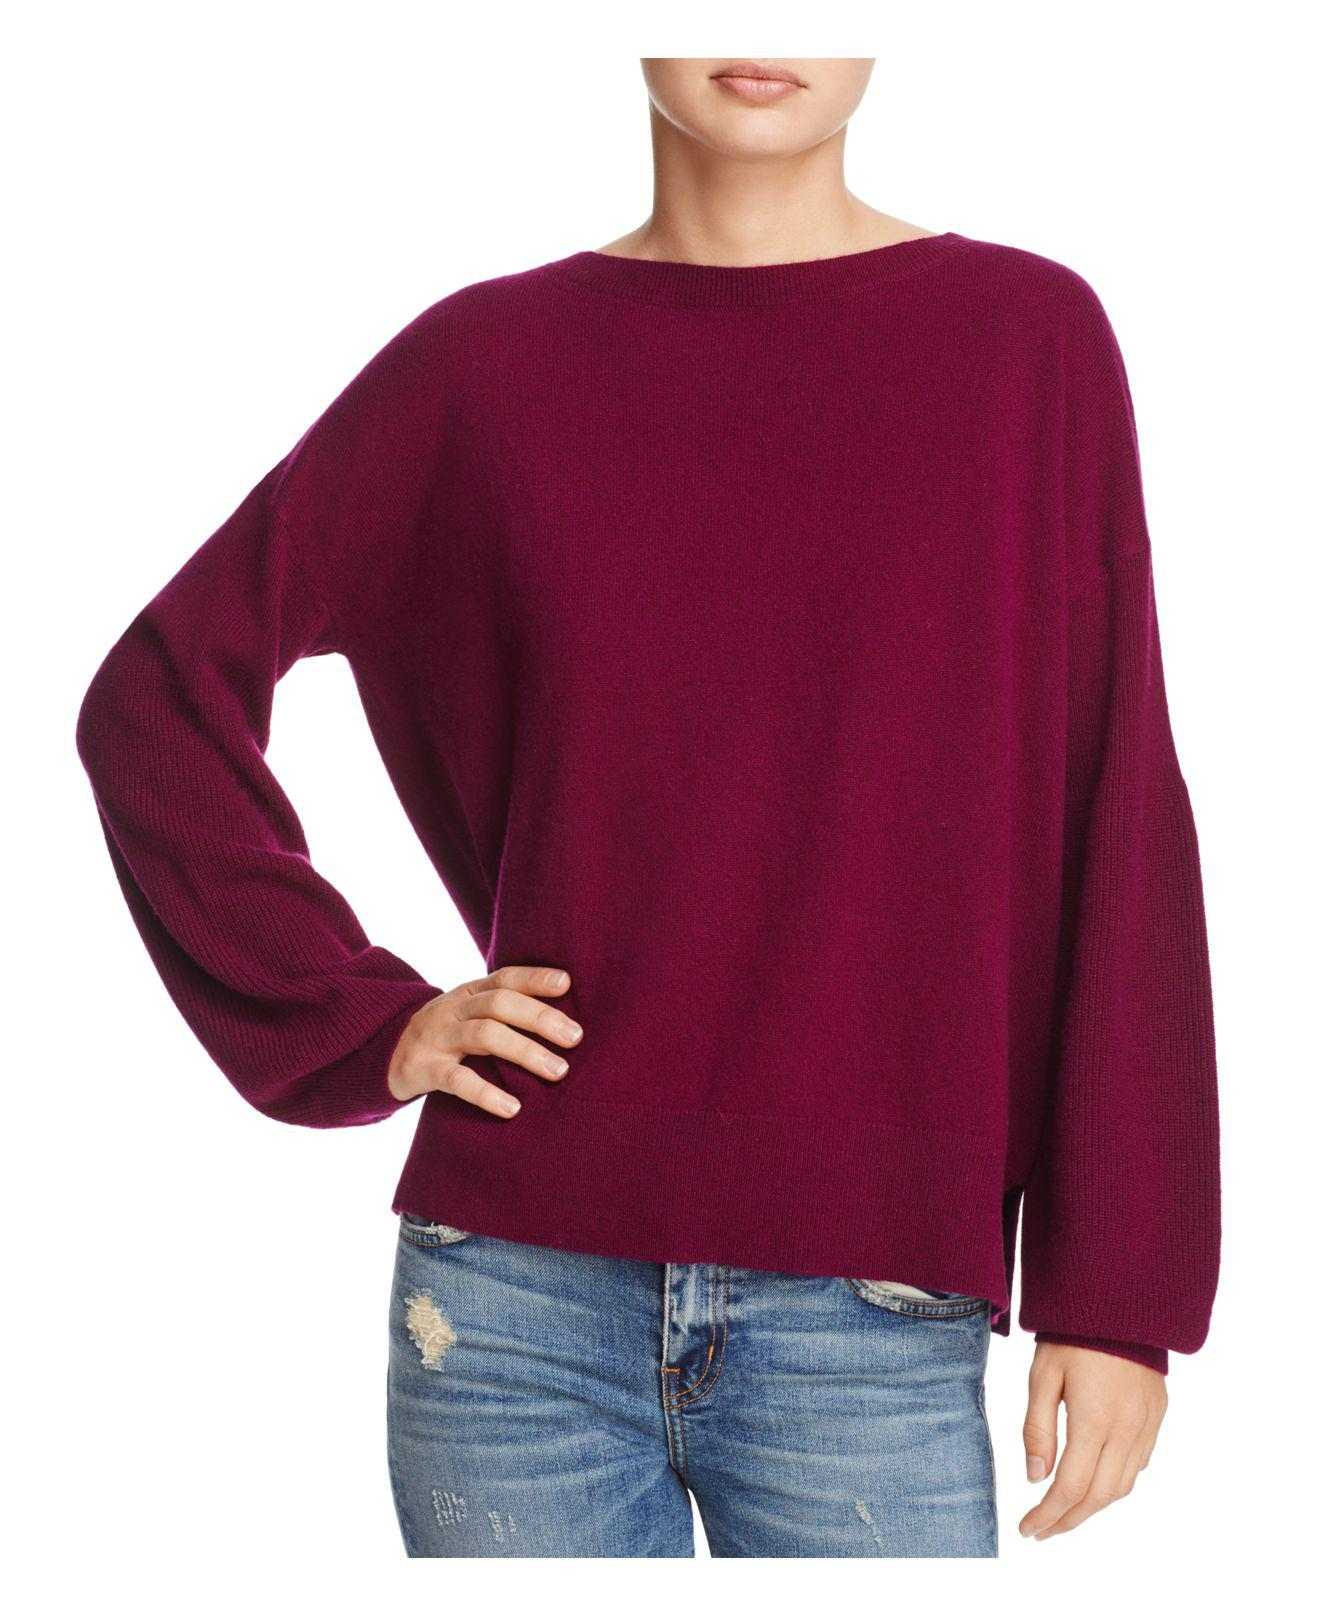 Theory Drop-shoulder Cashmere Sweater in Purple | Lyst